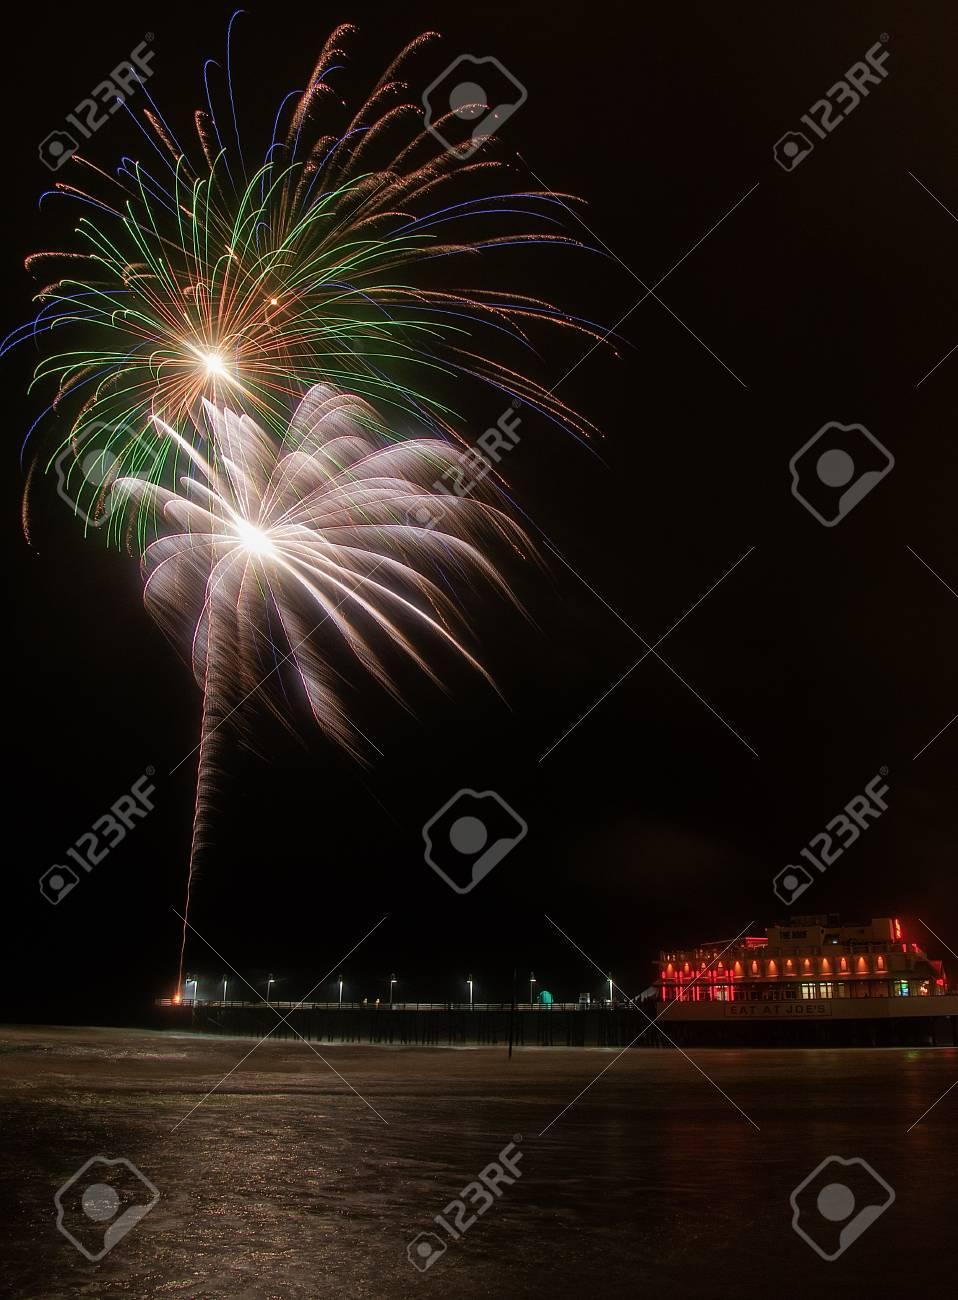 Fireworks Being Shot From The Pier At Daytona Beach In Florida Stock Photo Picture And Royalty Free Image Image 100642342